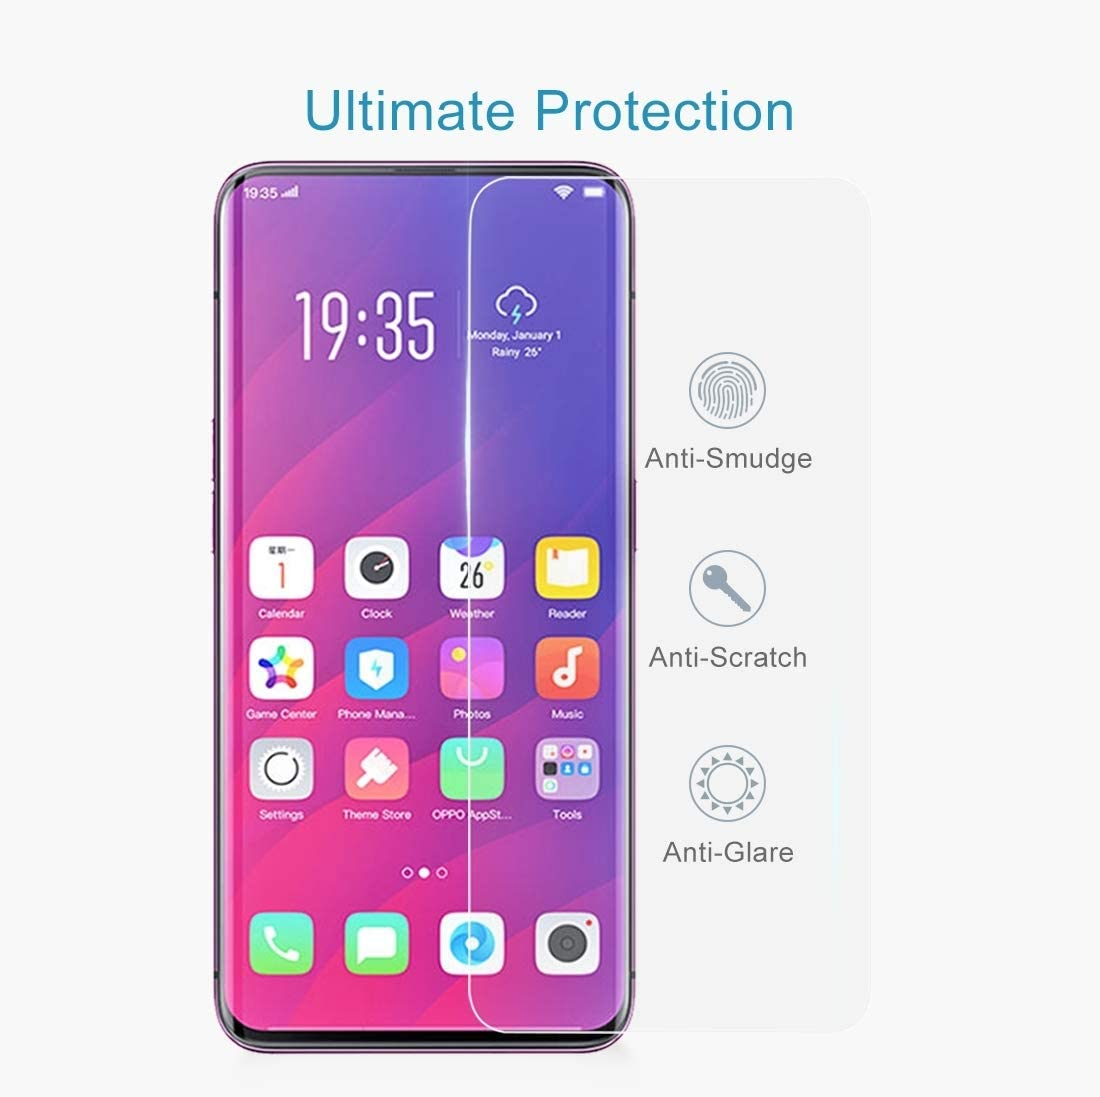 CAIFENG Tempered Glass Film Screen Protector 100 PCS 0.33mm 9H 2.5D Tempered Glass Film for Oppo Find X Anti-Scratch